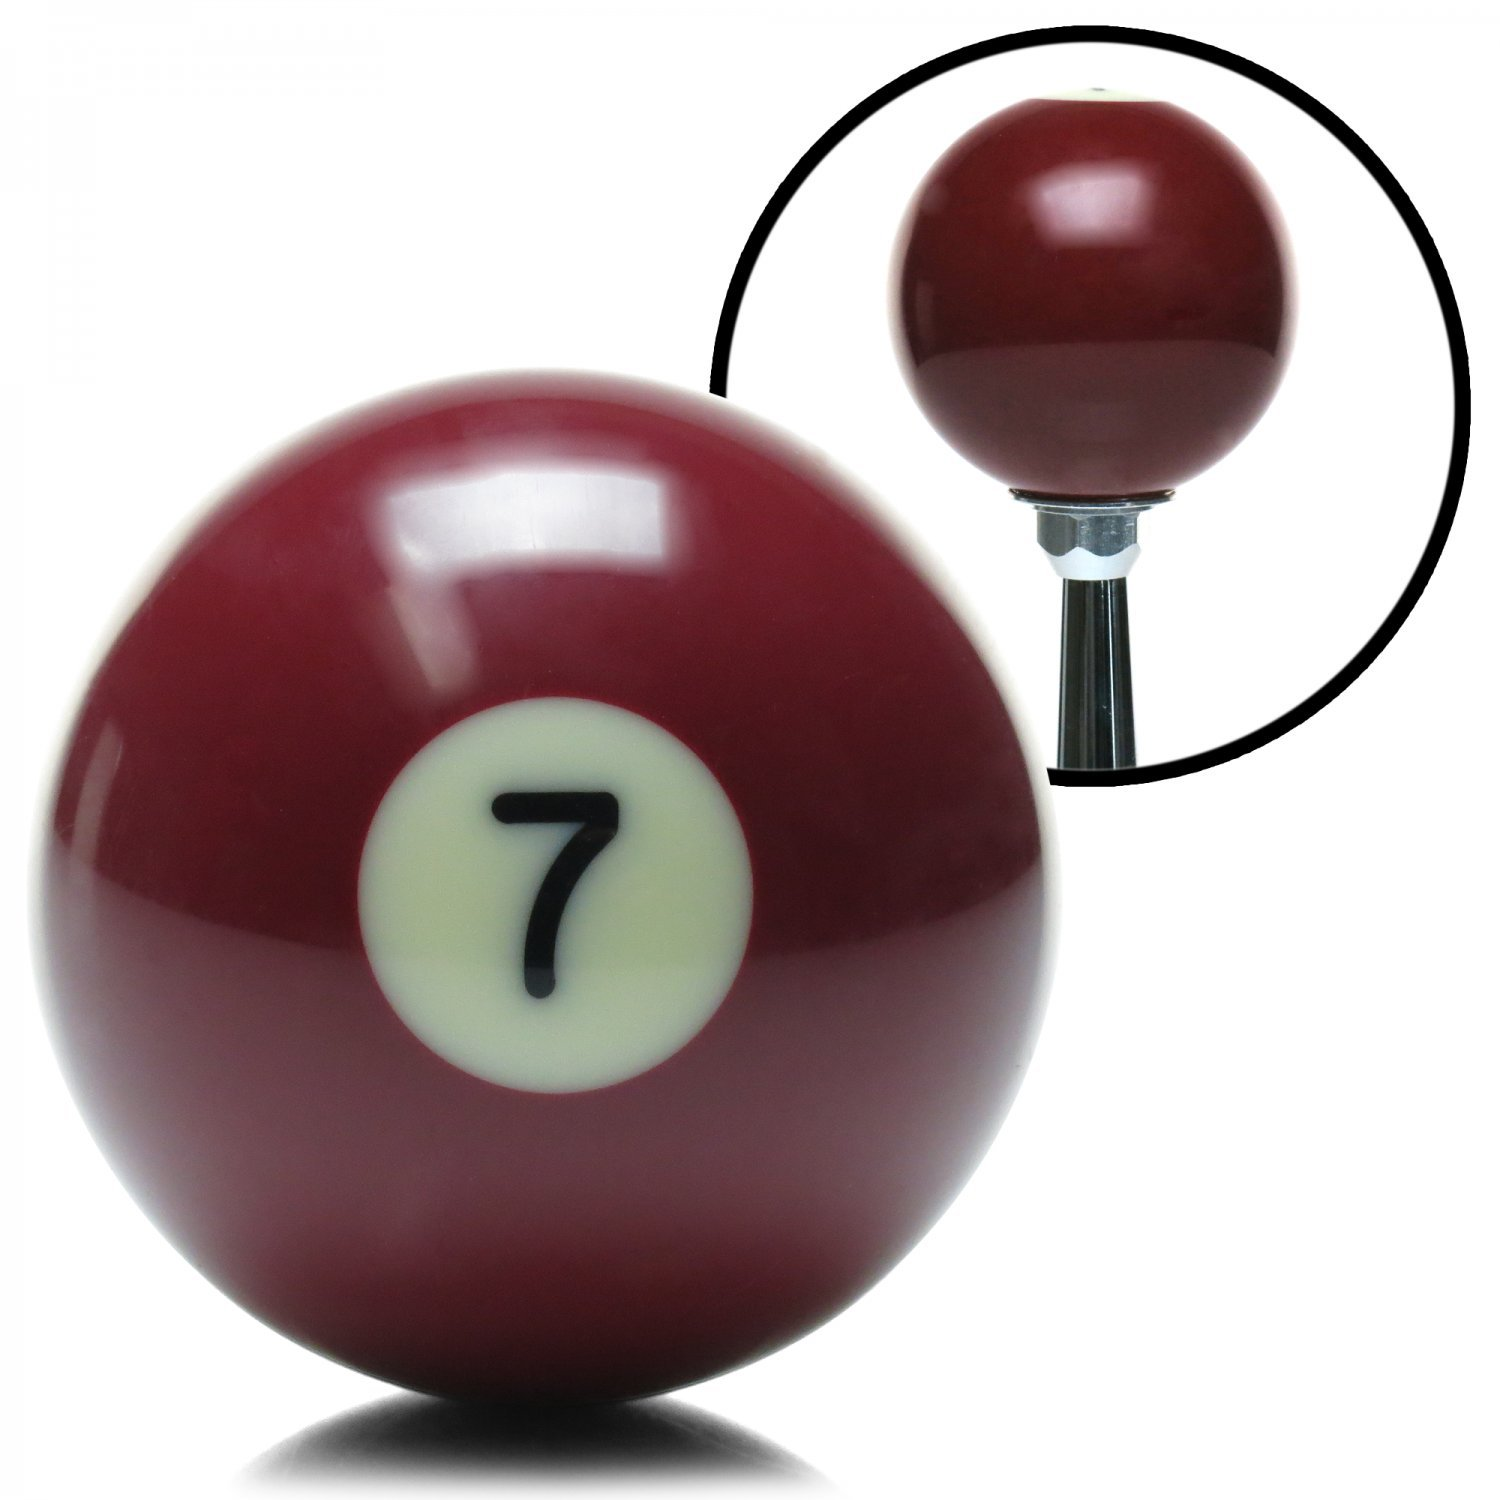 American Shifter 96052 Solid Dark Red 7 Ball Billiard Pool Shift Knob